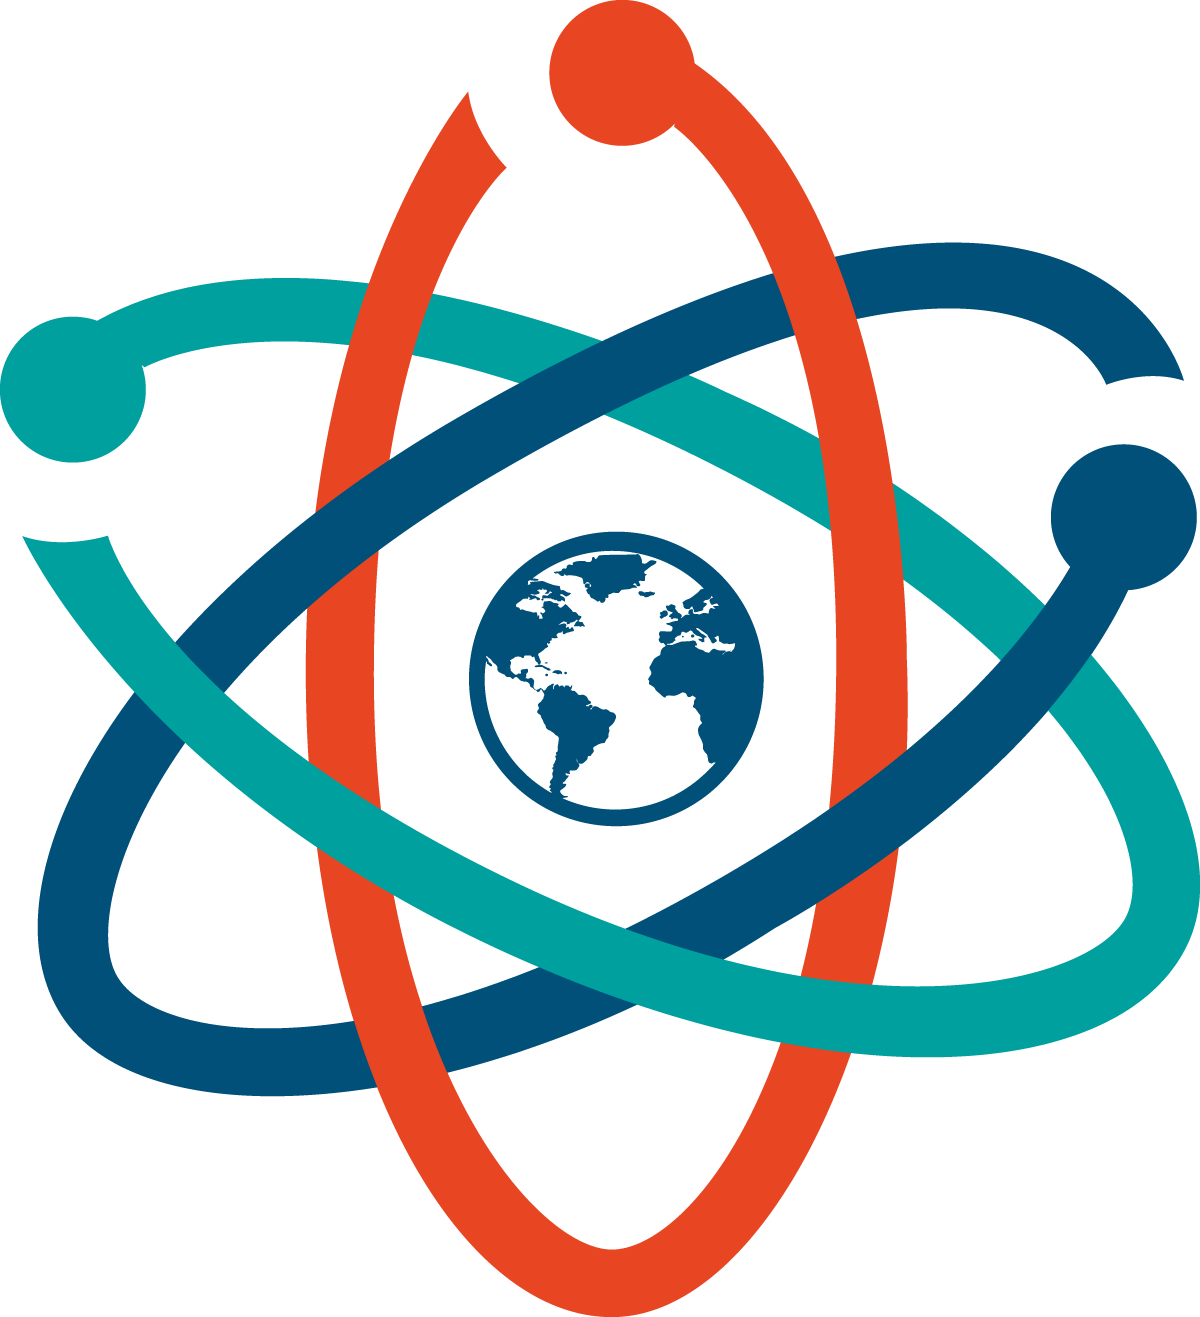 Science png. Image arts